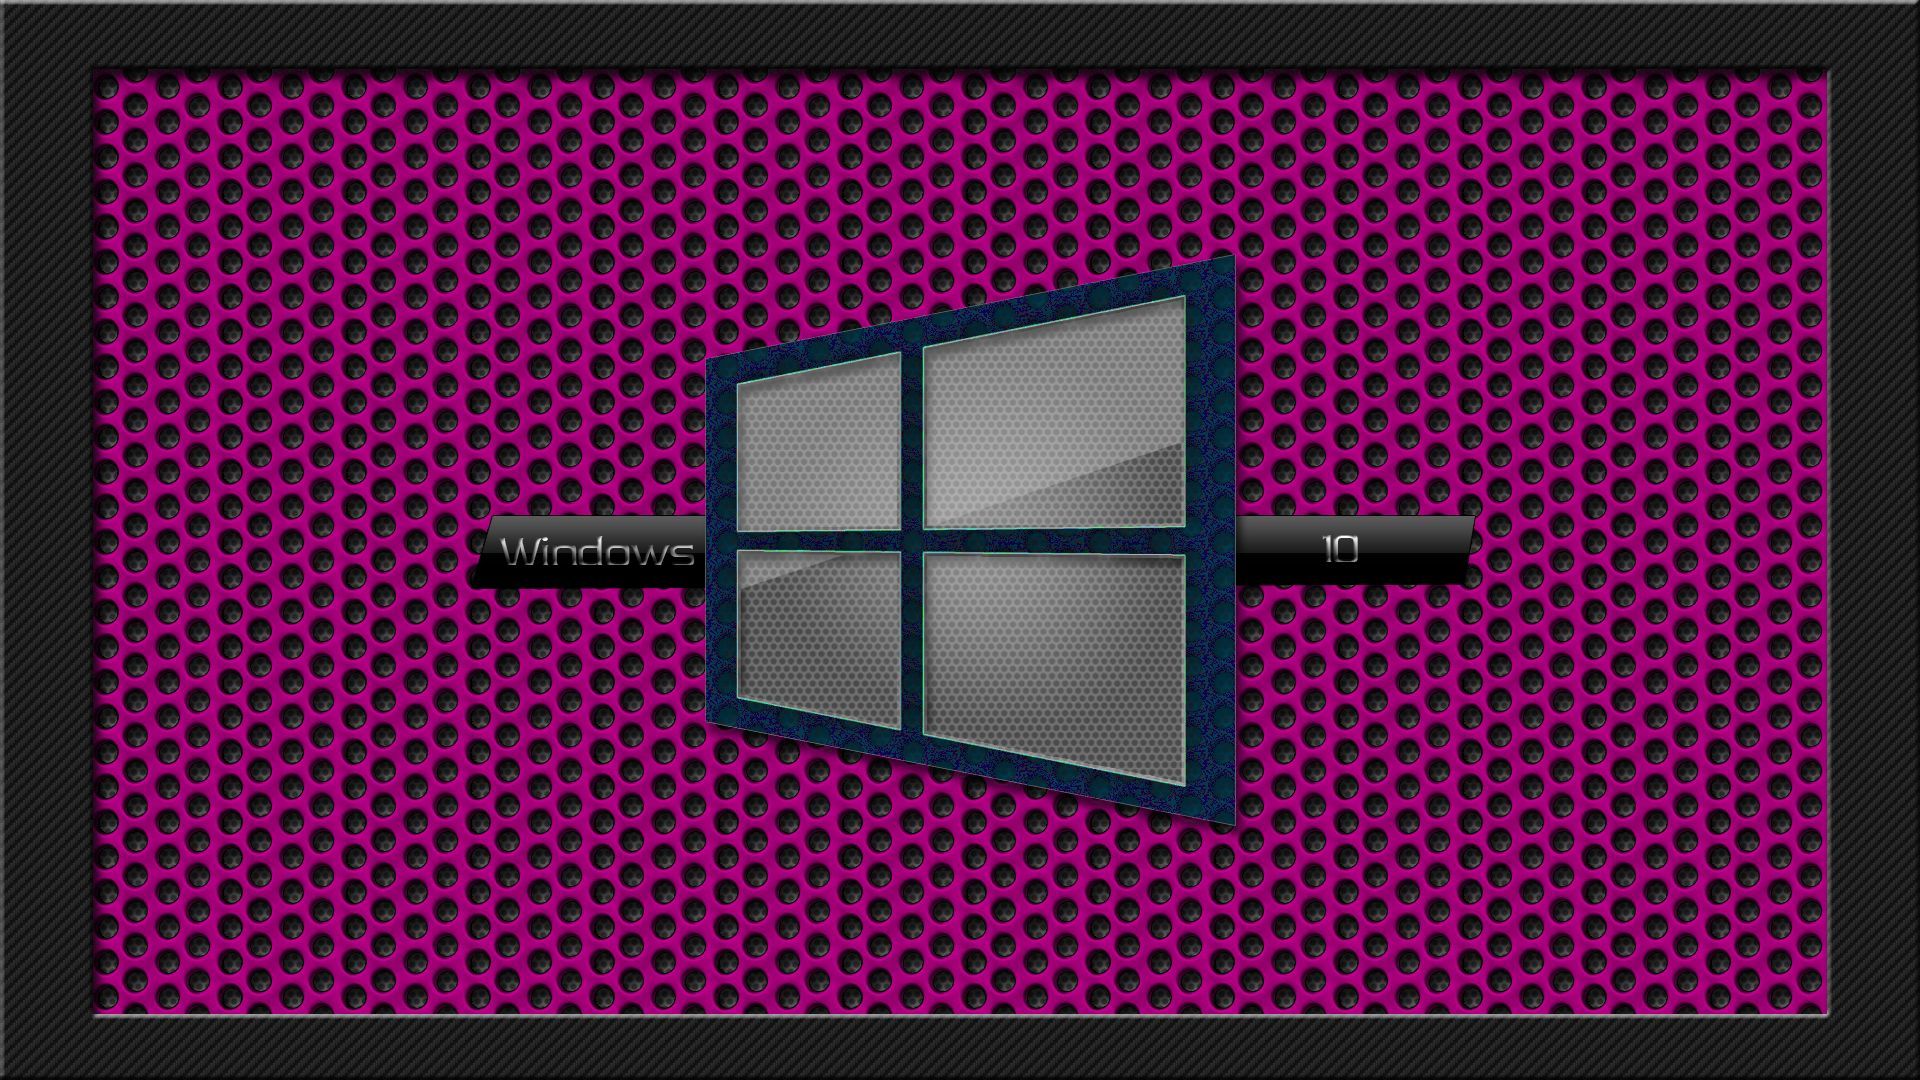 Windows 10 RS1 Wall